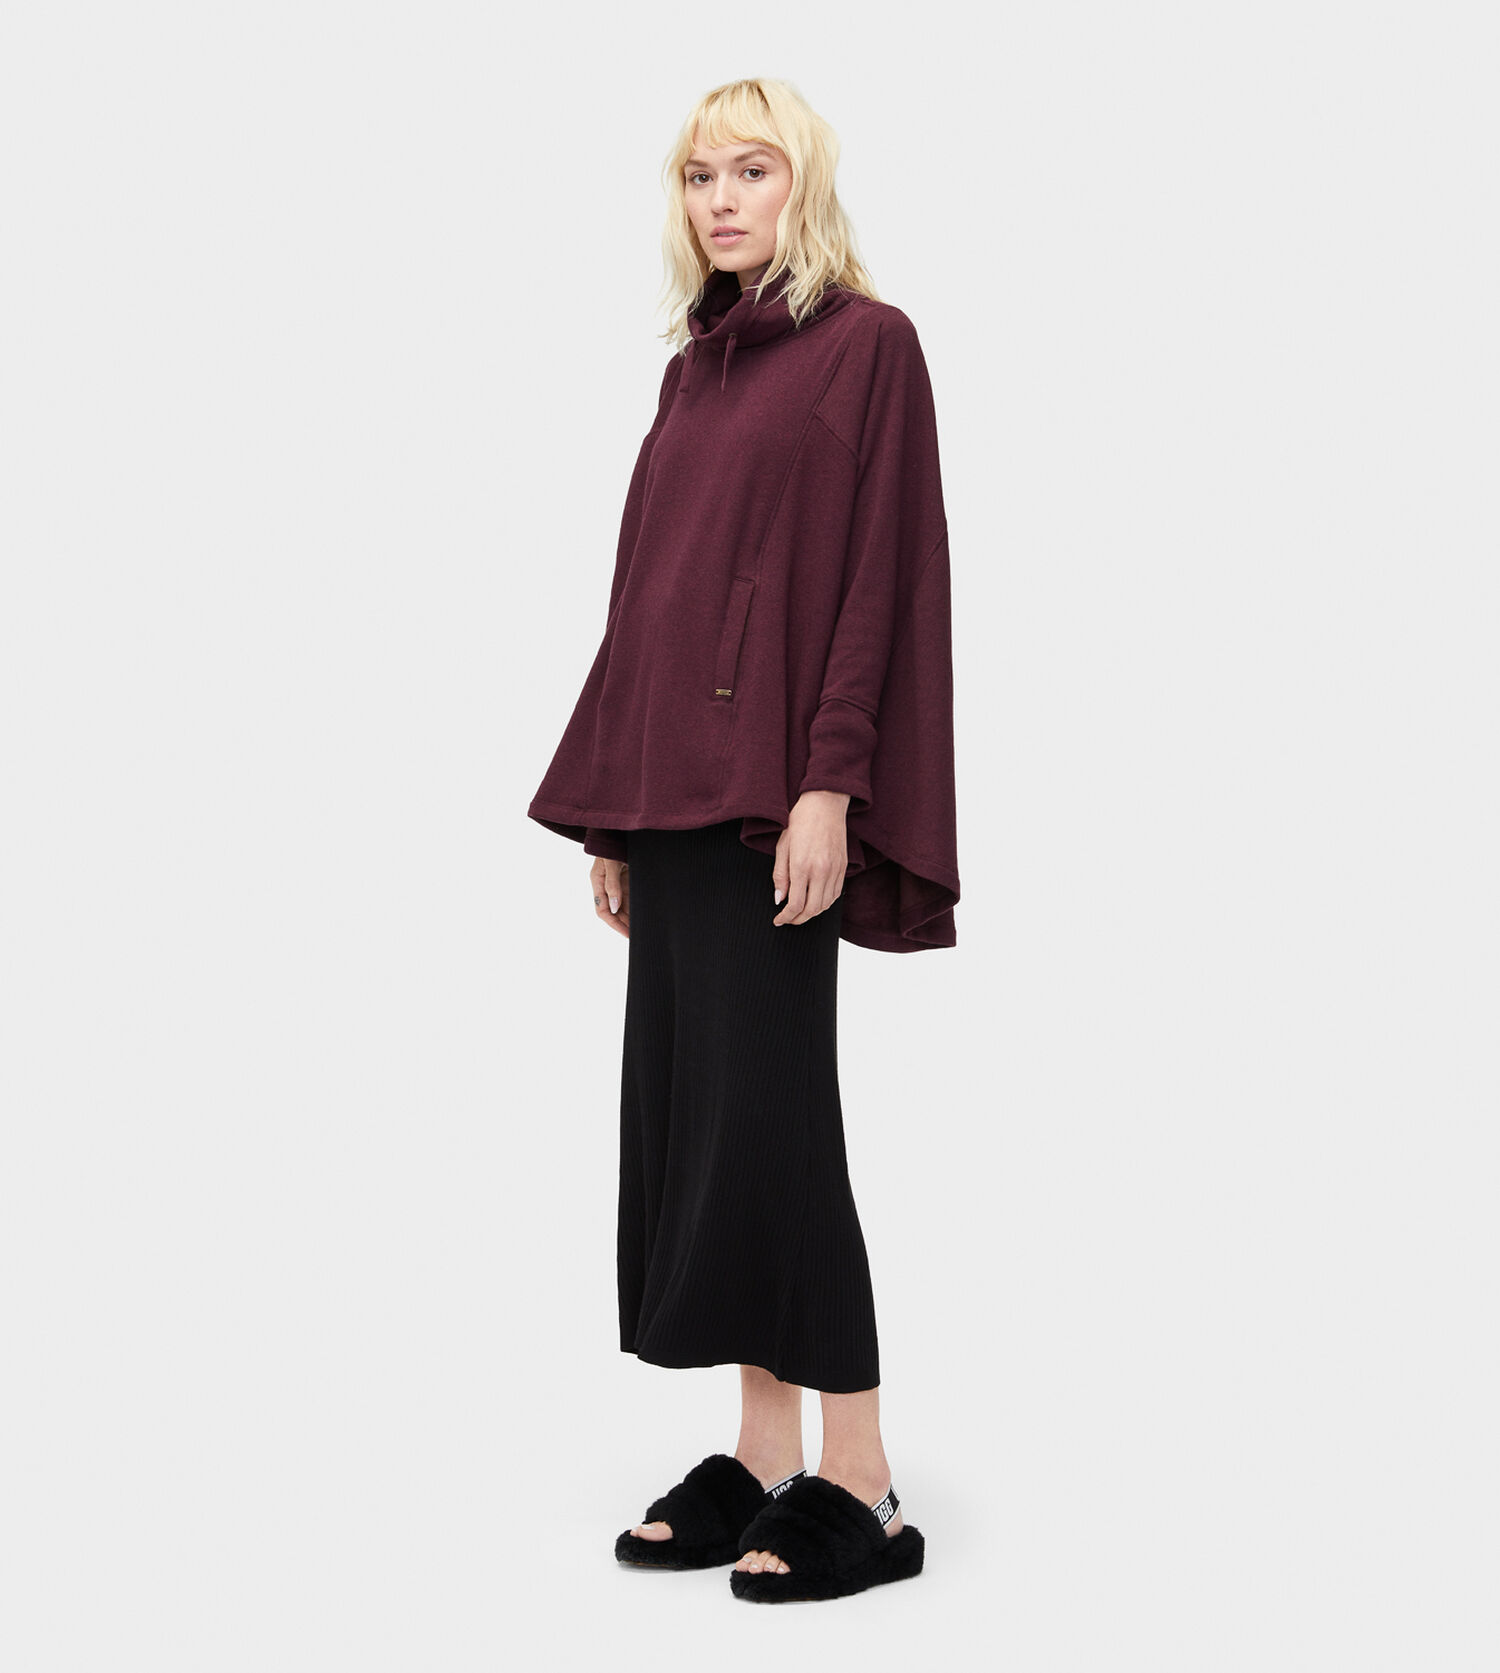 ca682abb1f1 Women's Share this product Pichot Poncho